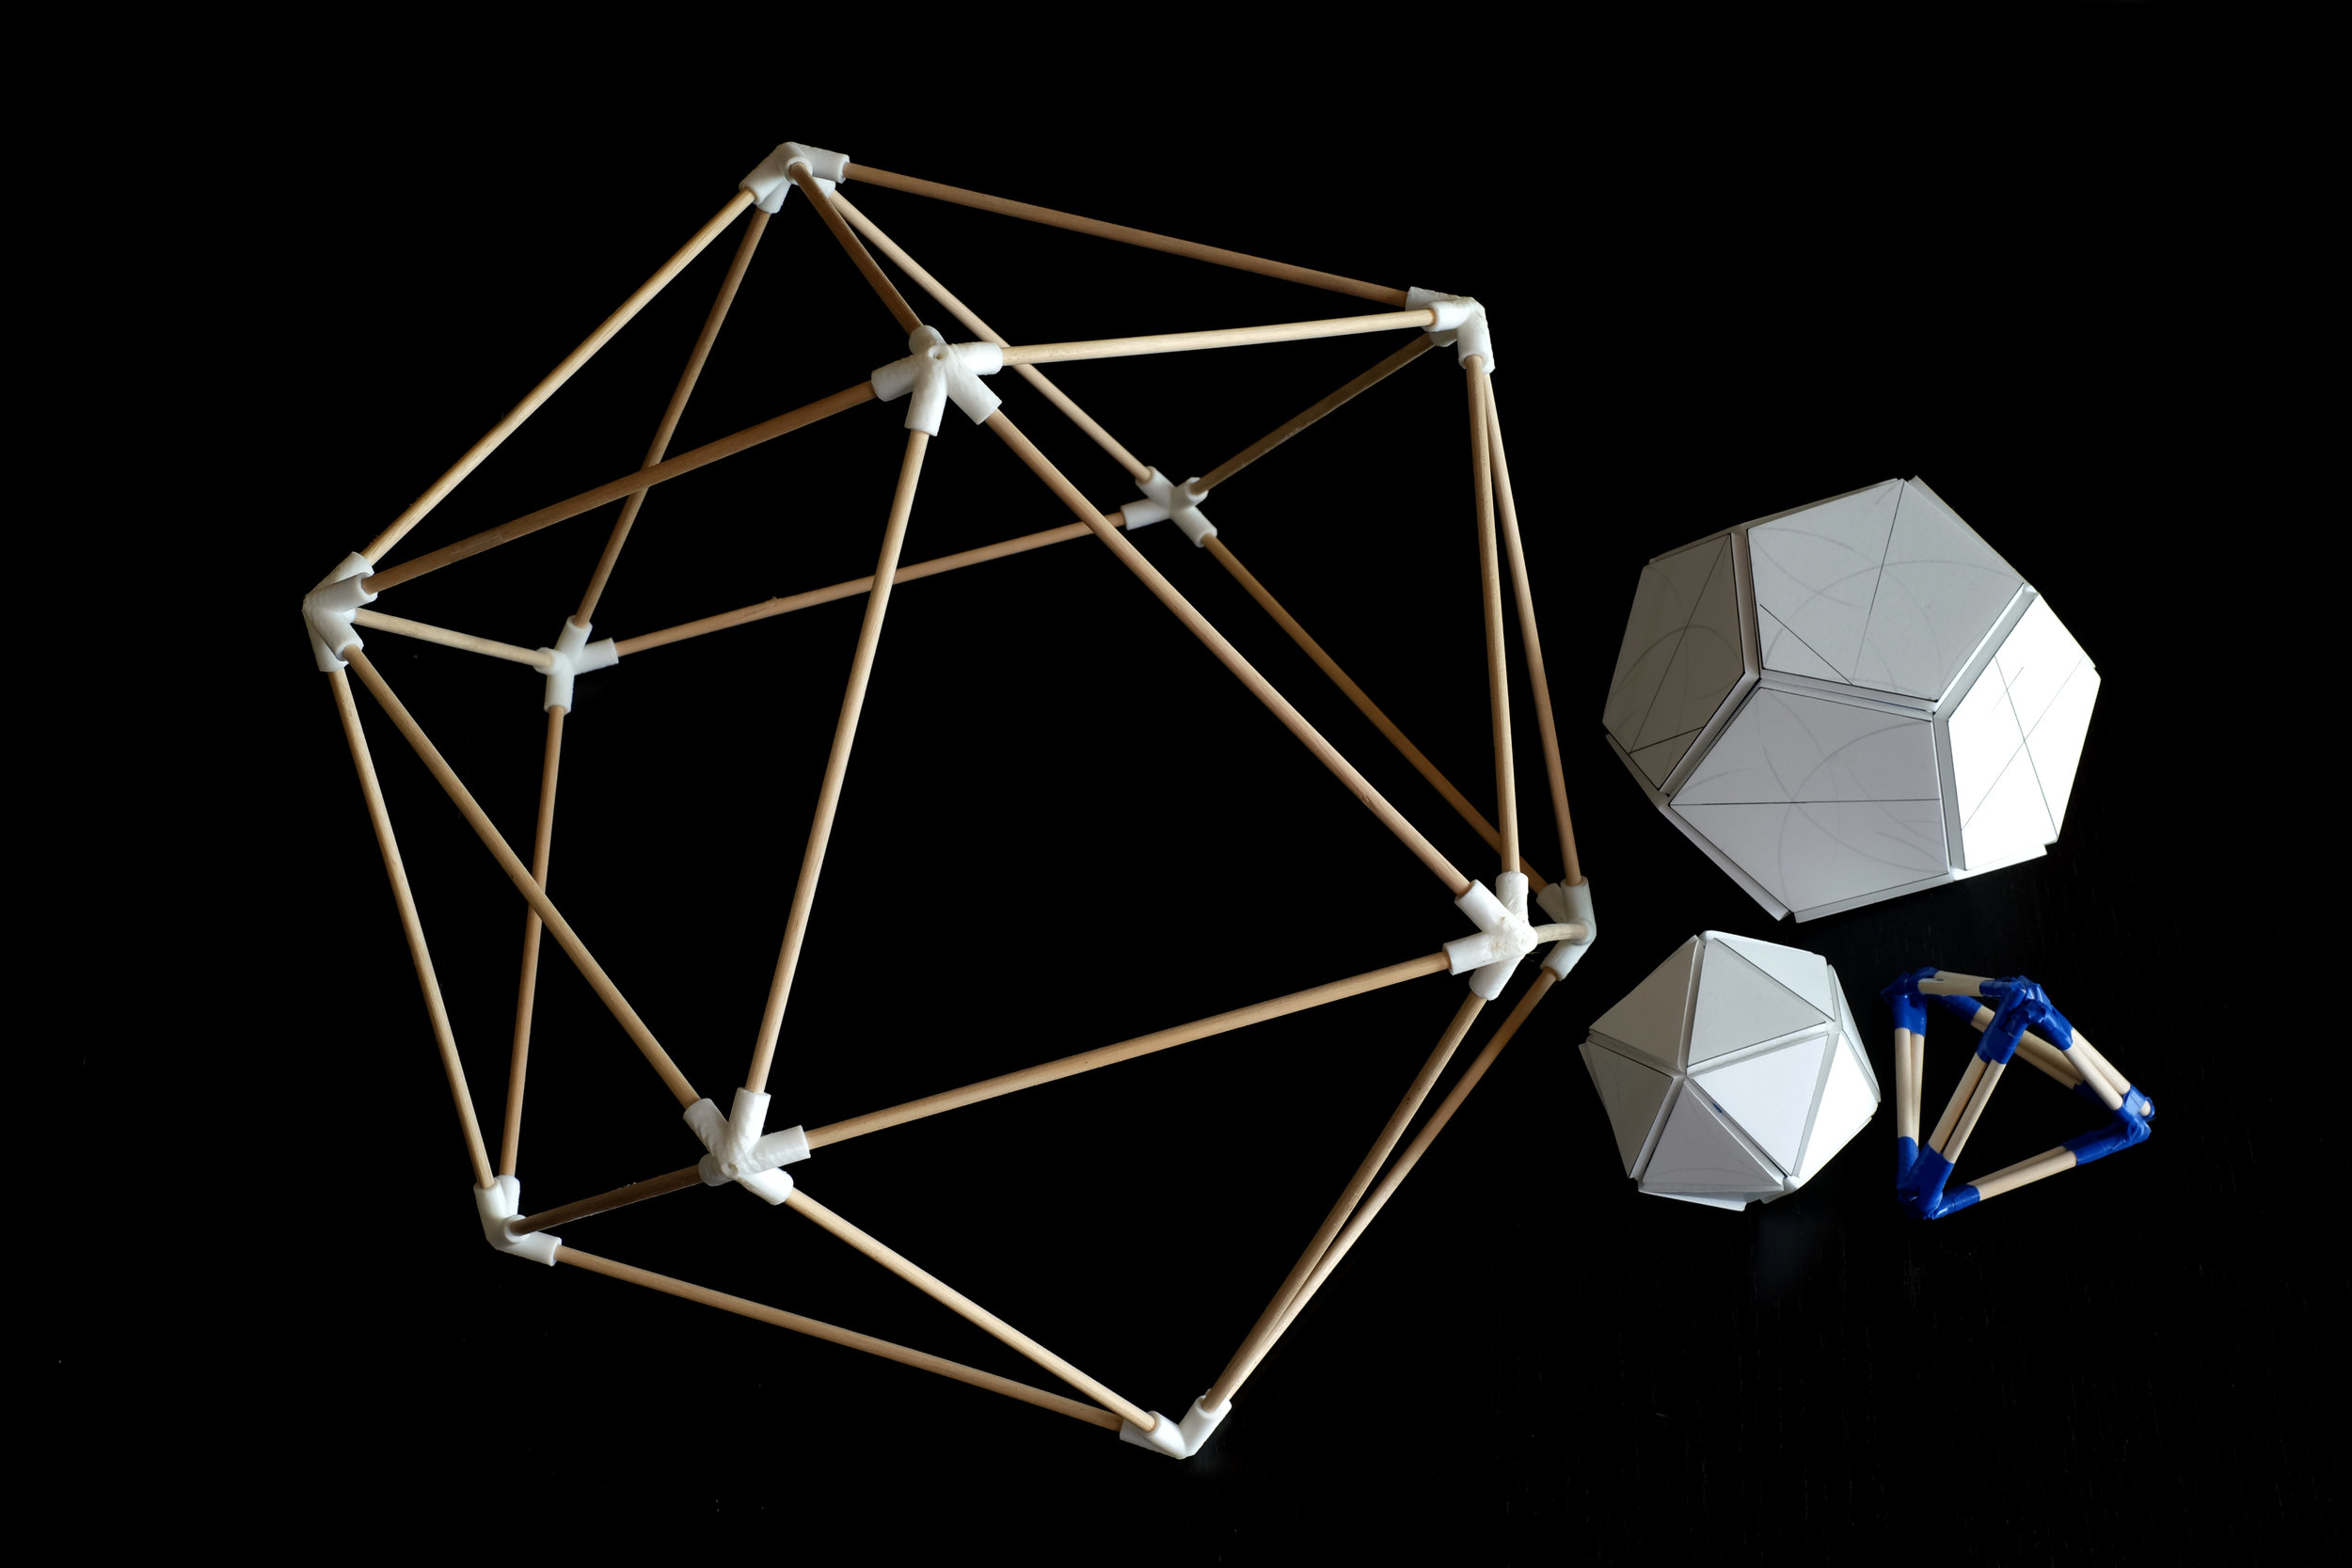 Study 1: A tape + foam board icosahedron and dodecahedron, a tape and dowel tetrahedron, and a large icosahedron with 3D-printed connectors